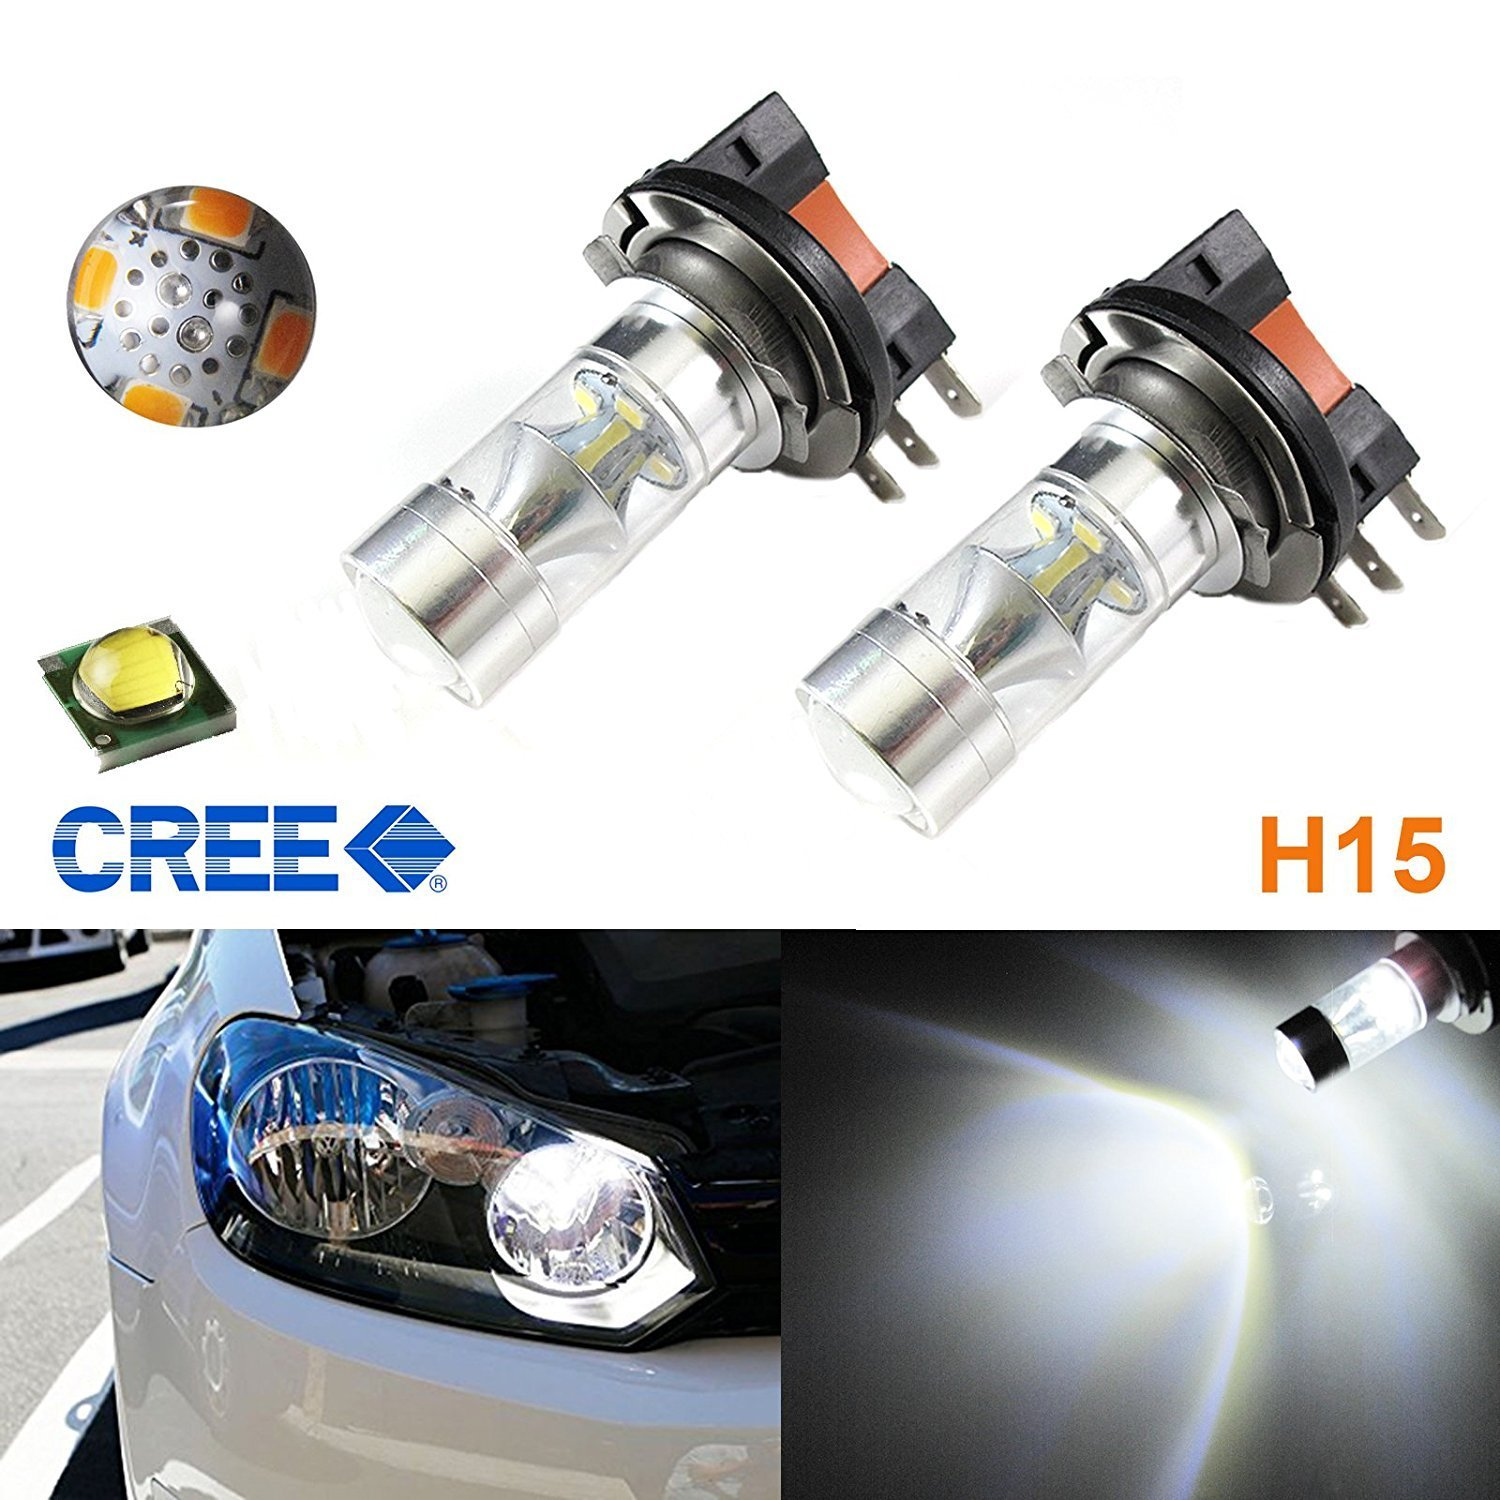 (2) Super Bright White 100W High Power CREE H15 LED Bulbs For VW Audi BMW Mercedes DRL Lamps Xotic Tech Direct